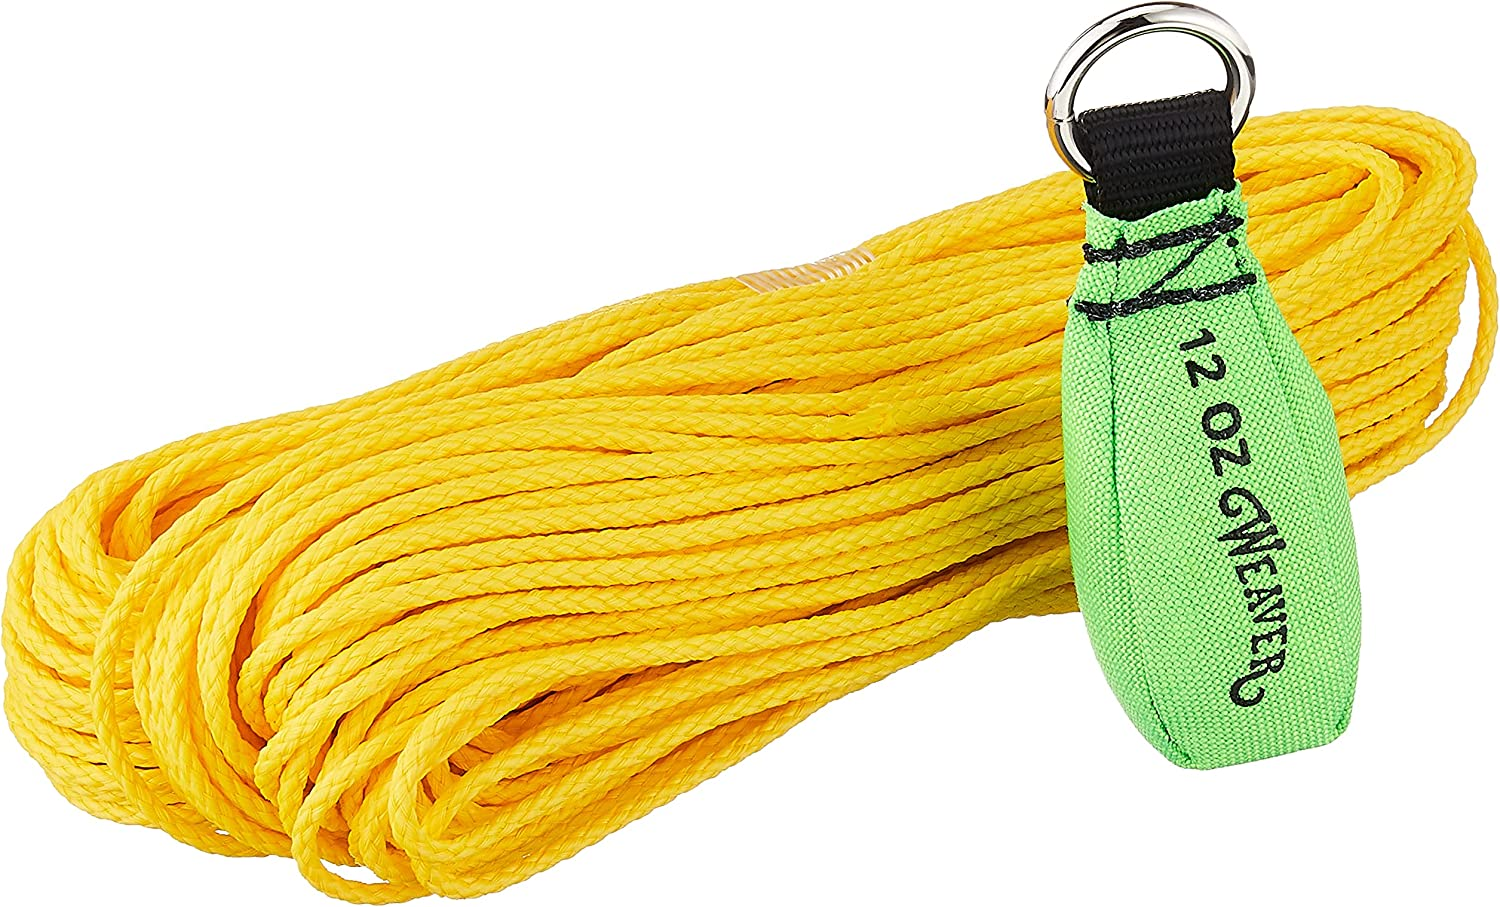 Weaver Arborist Max 87% OFF Throw mart Weight and Kit oz Green Line 12